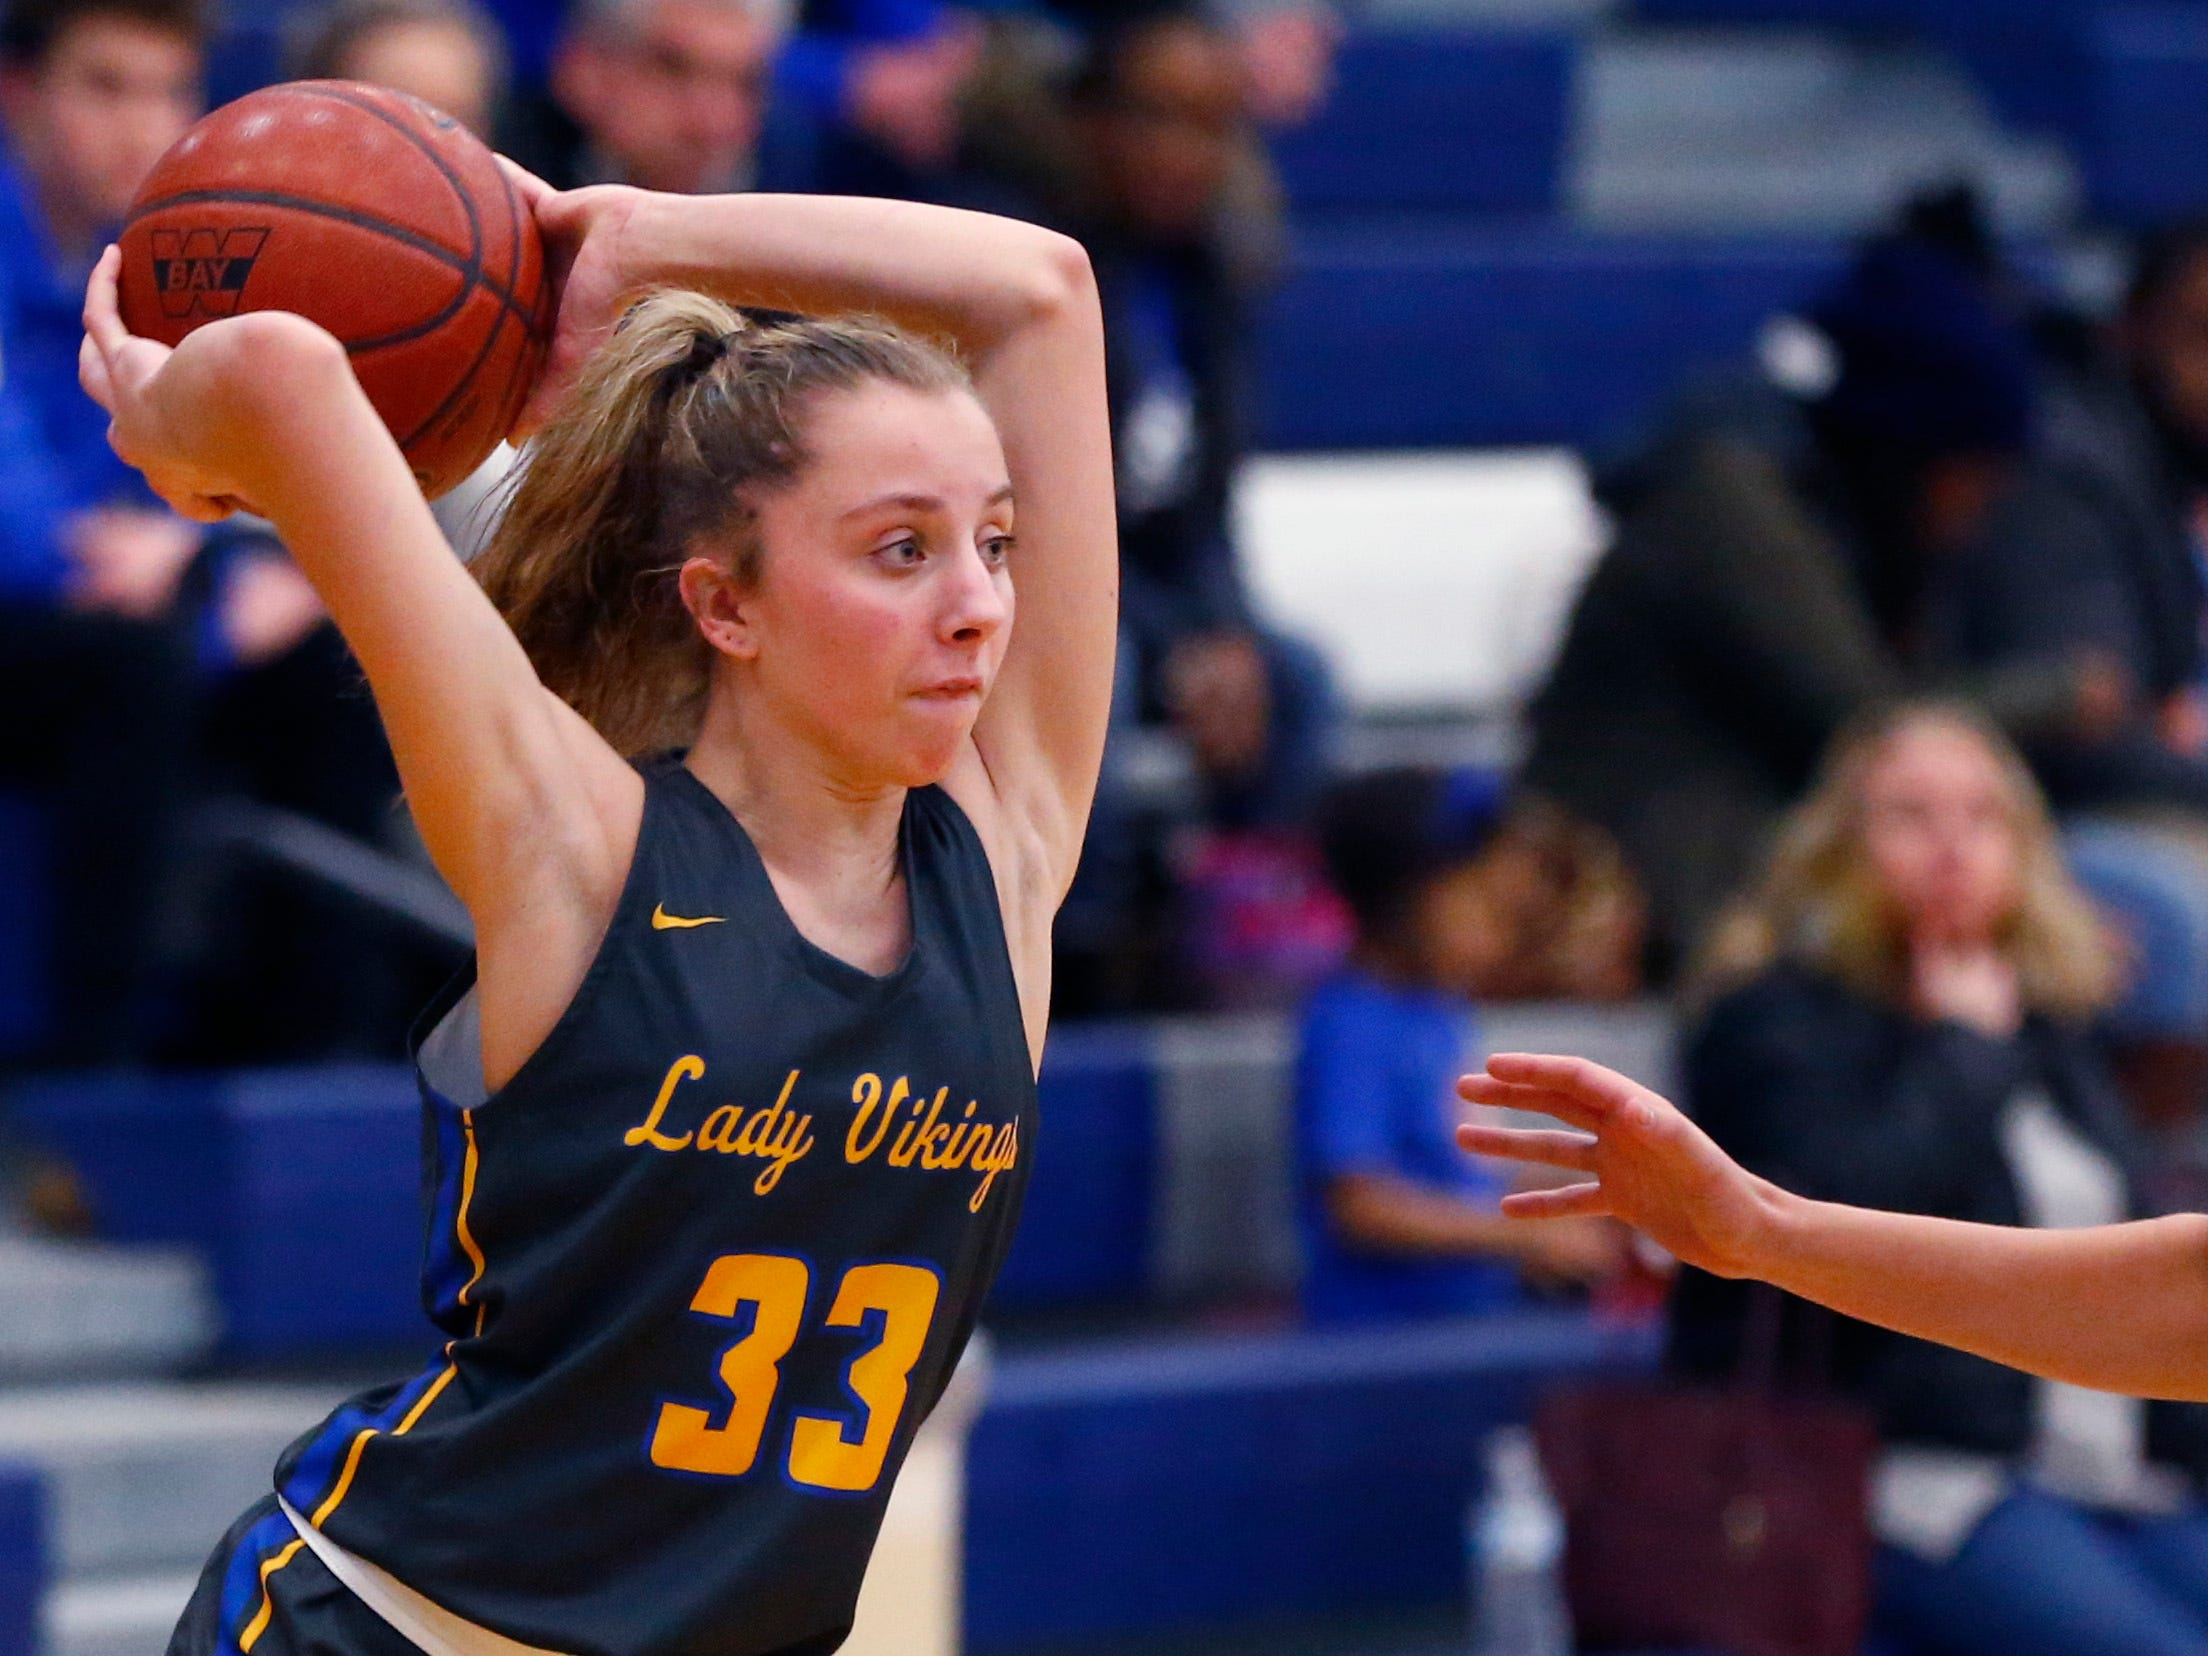 New Berlin West's Kayla Garny passes off the ball at Whitefish Bay on Jan. 2.